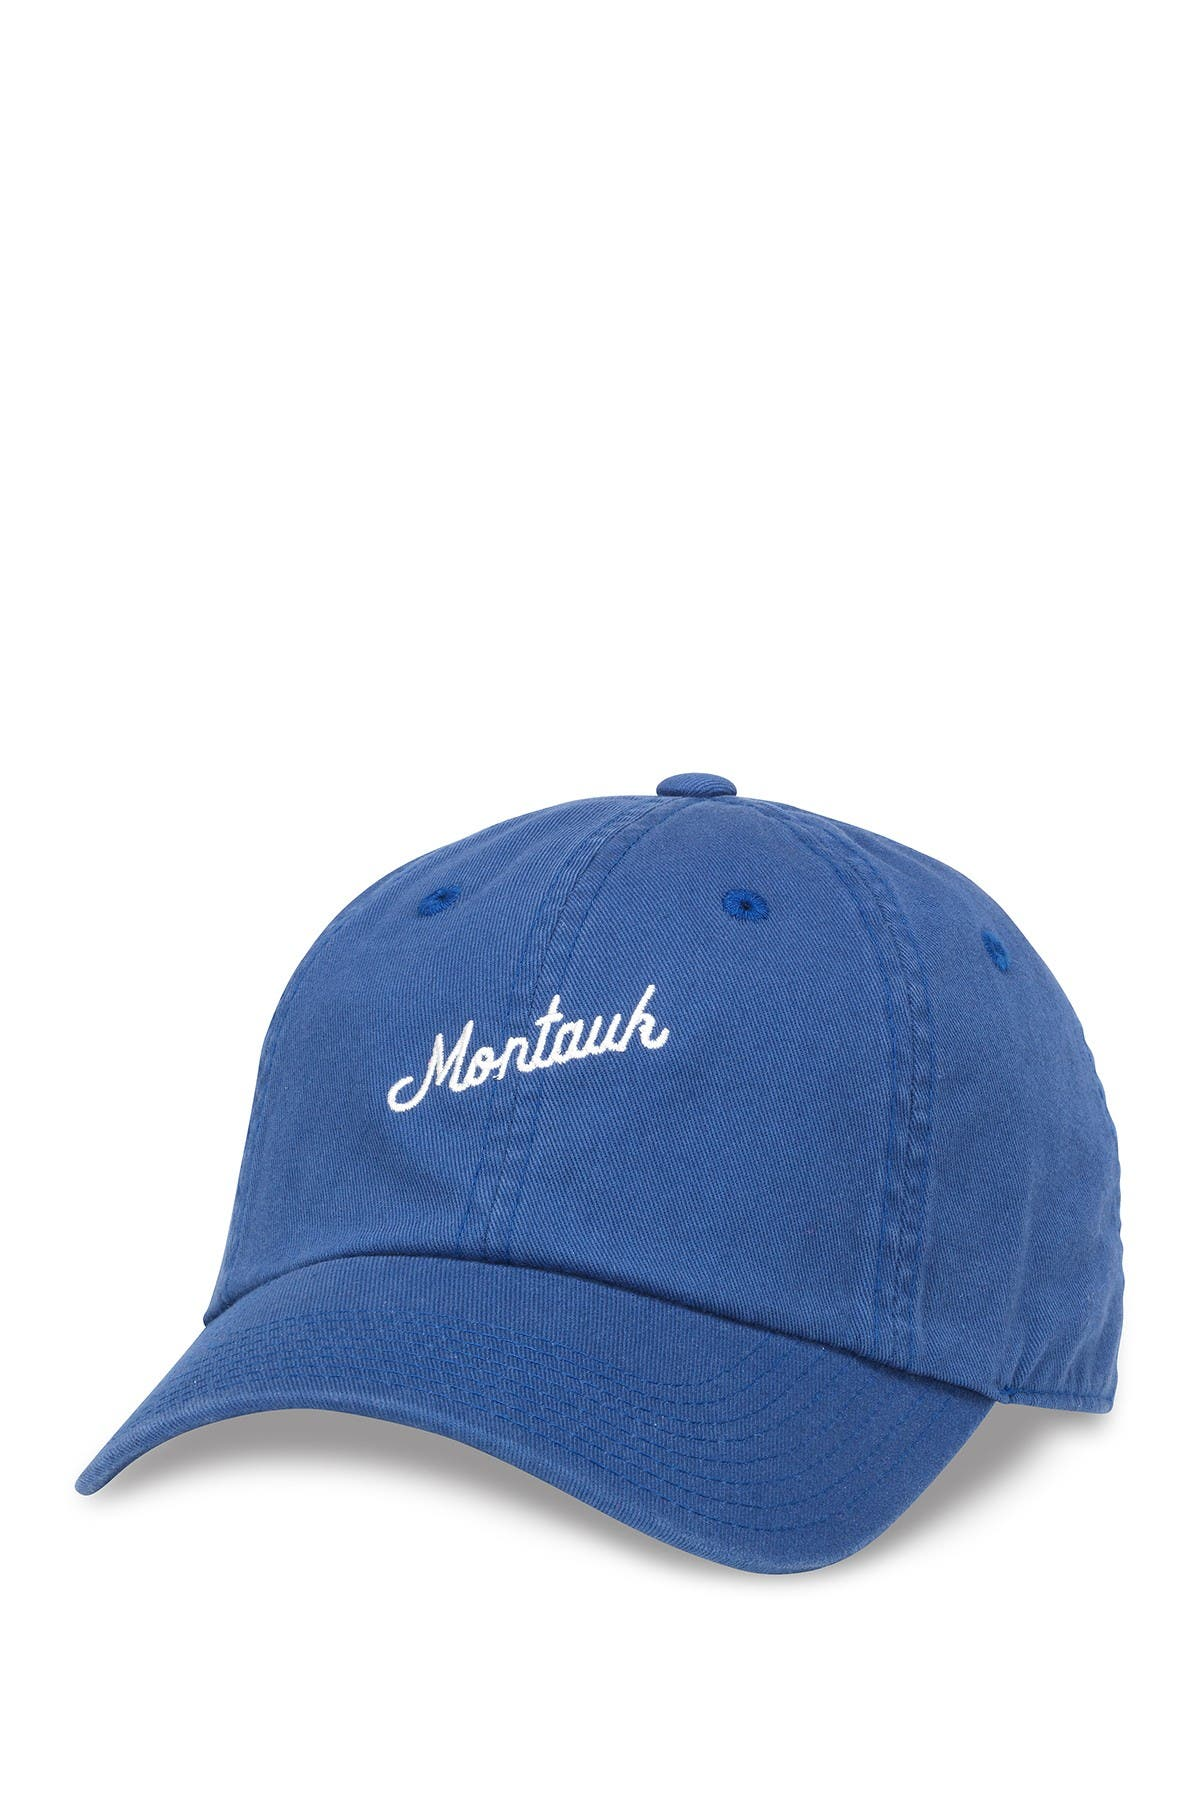 Image of American Needle Montauk Embroidered Baseball Cap